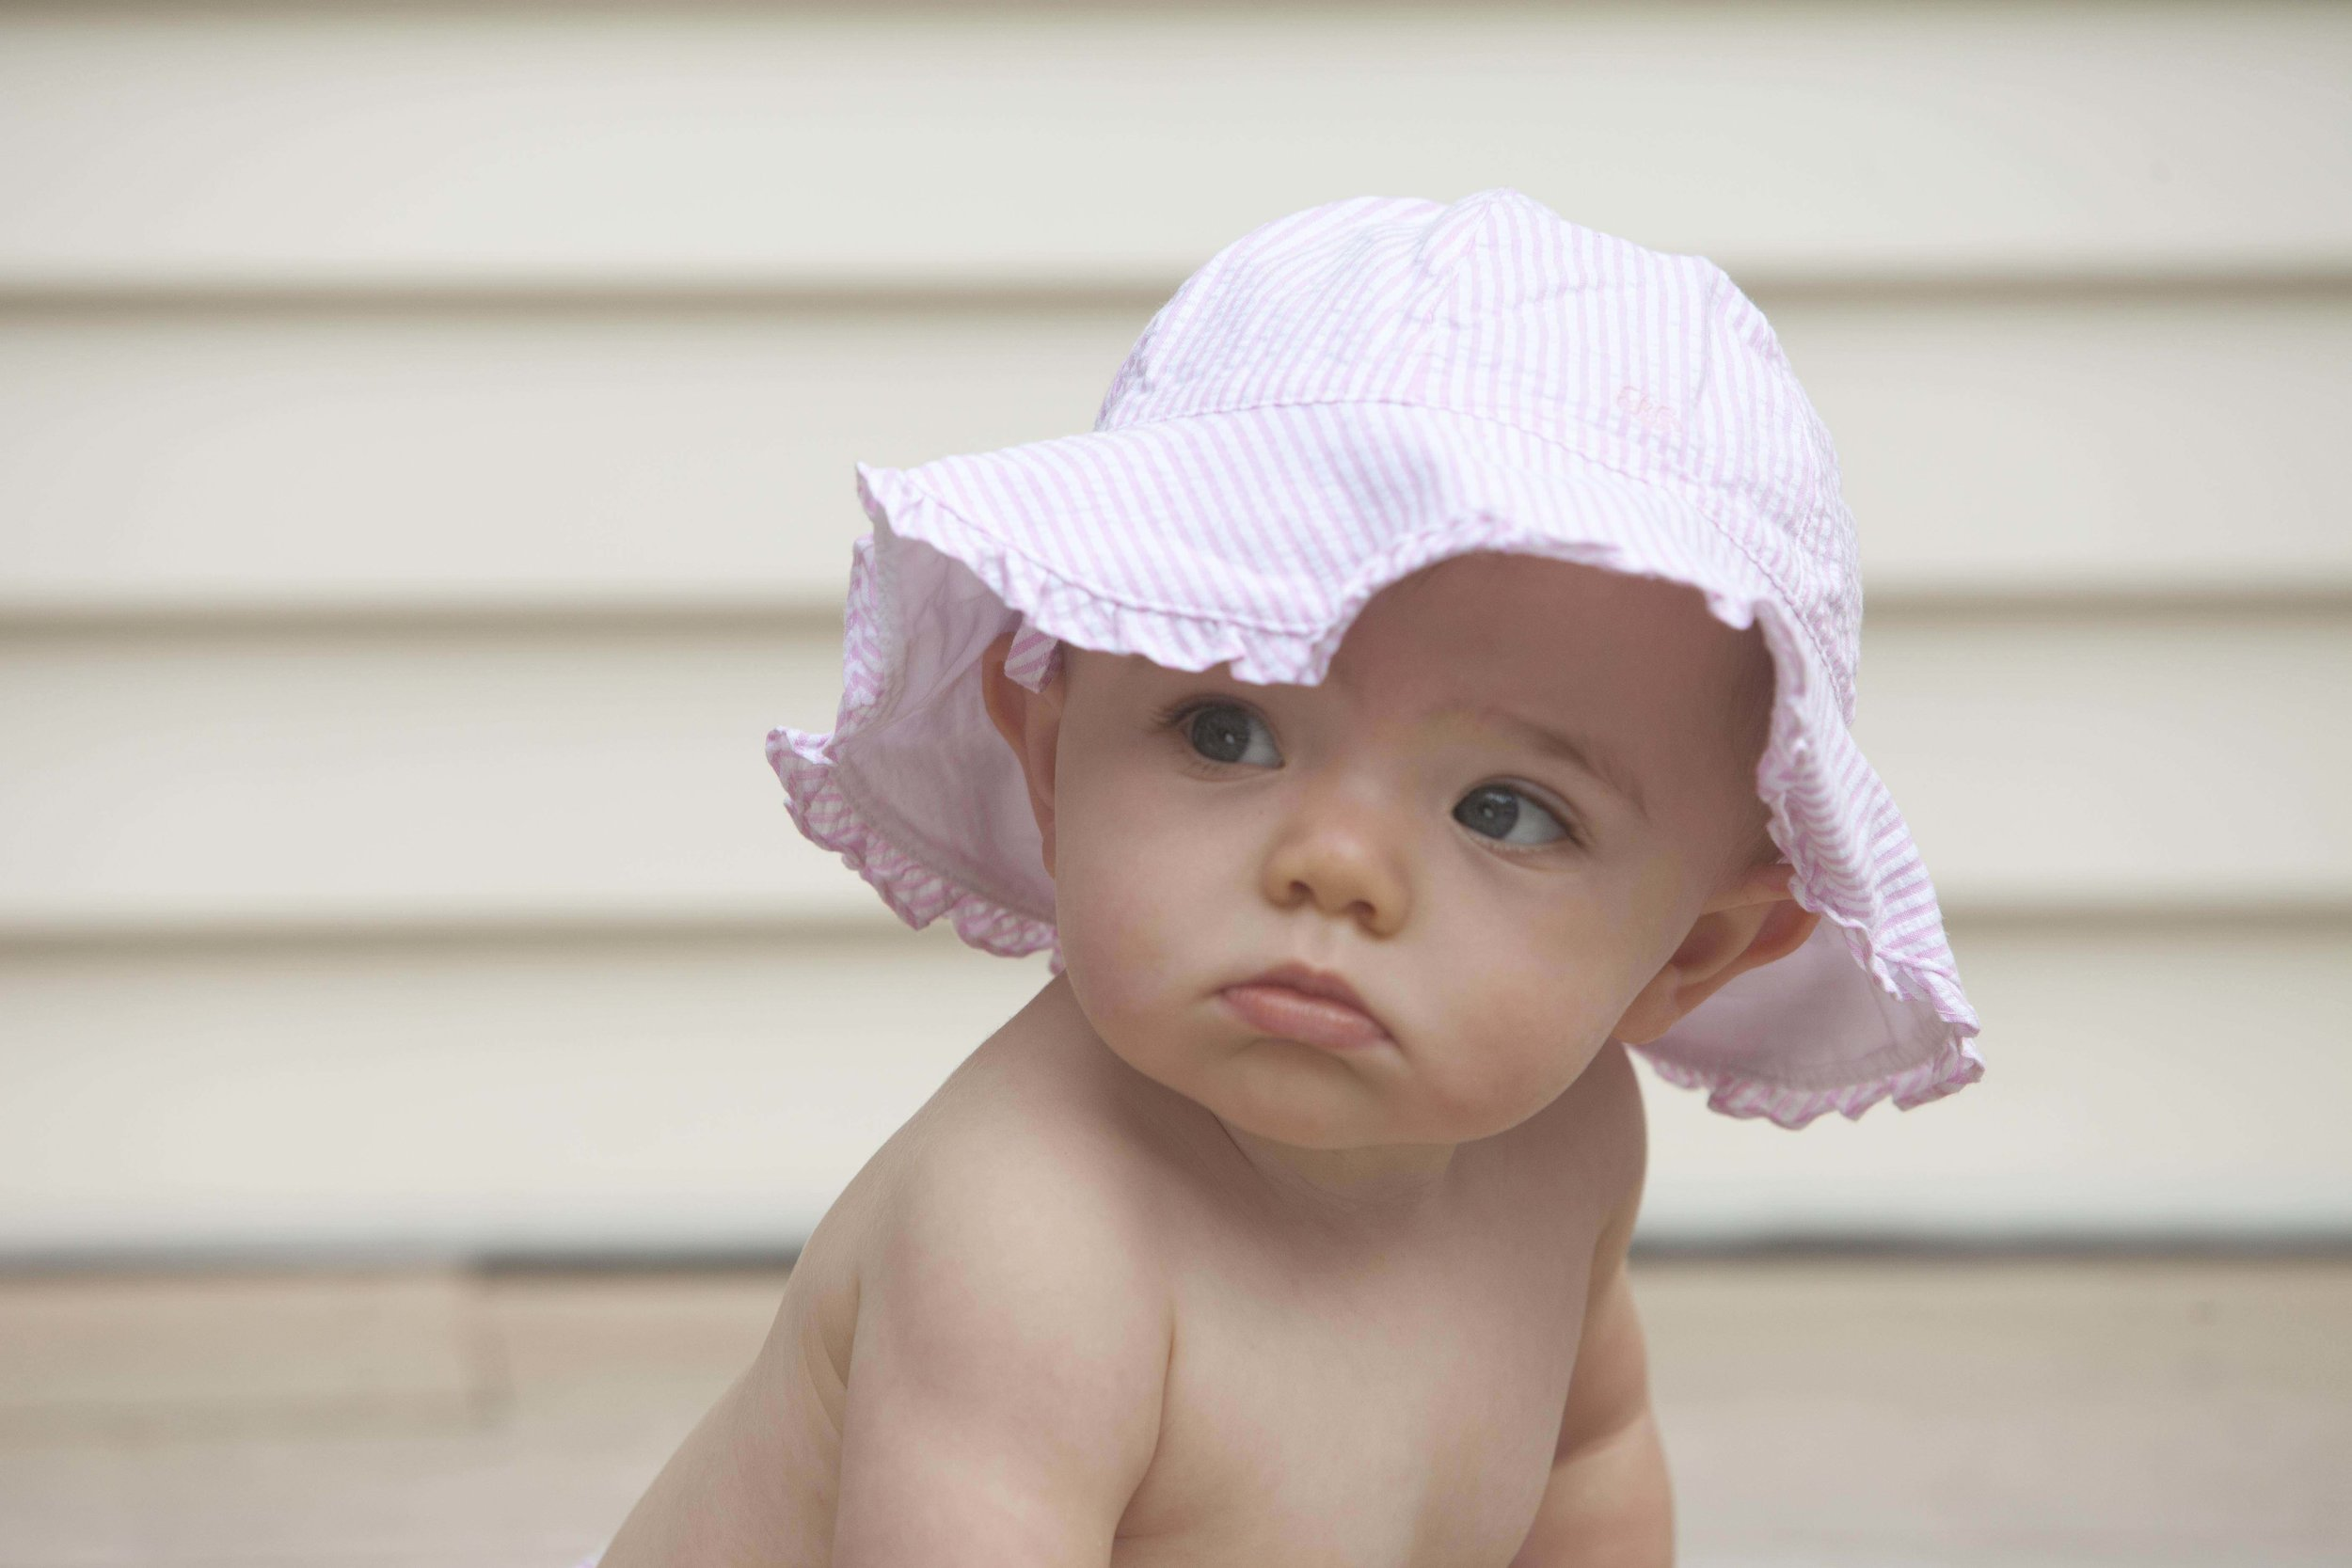 Adorable baby takes a moment to examine the world around her. Photo by Lucille Khornak.